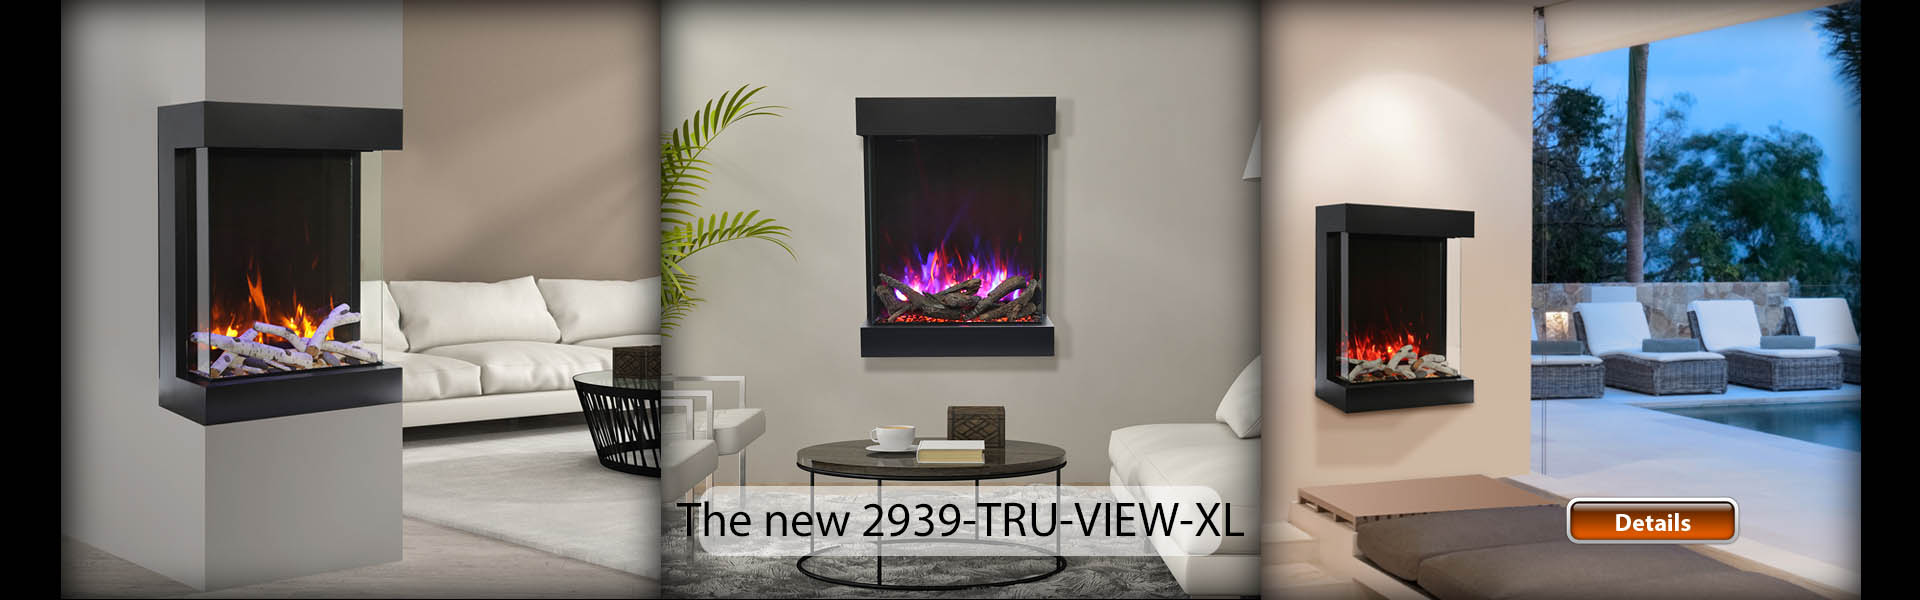 TruView electric fireplace